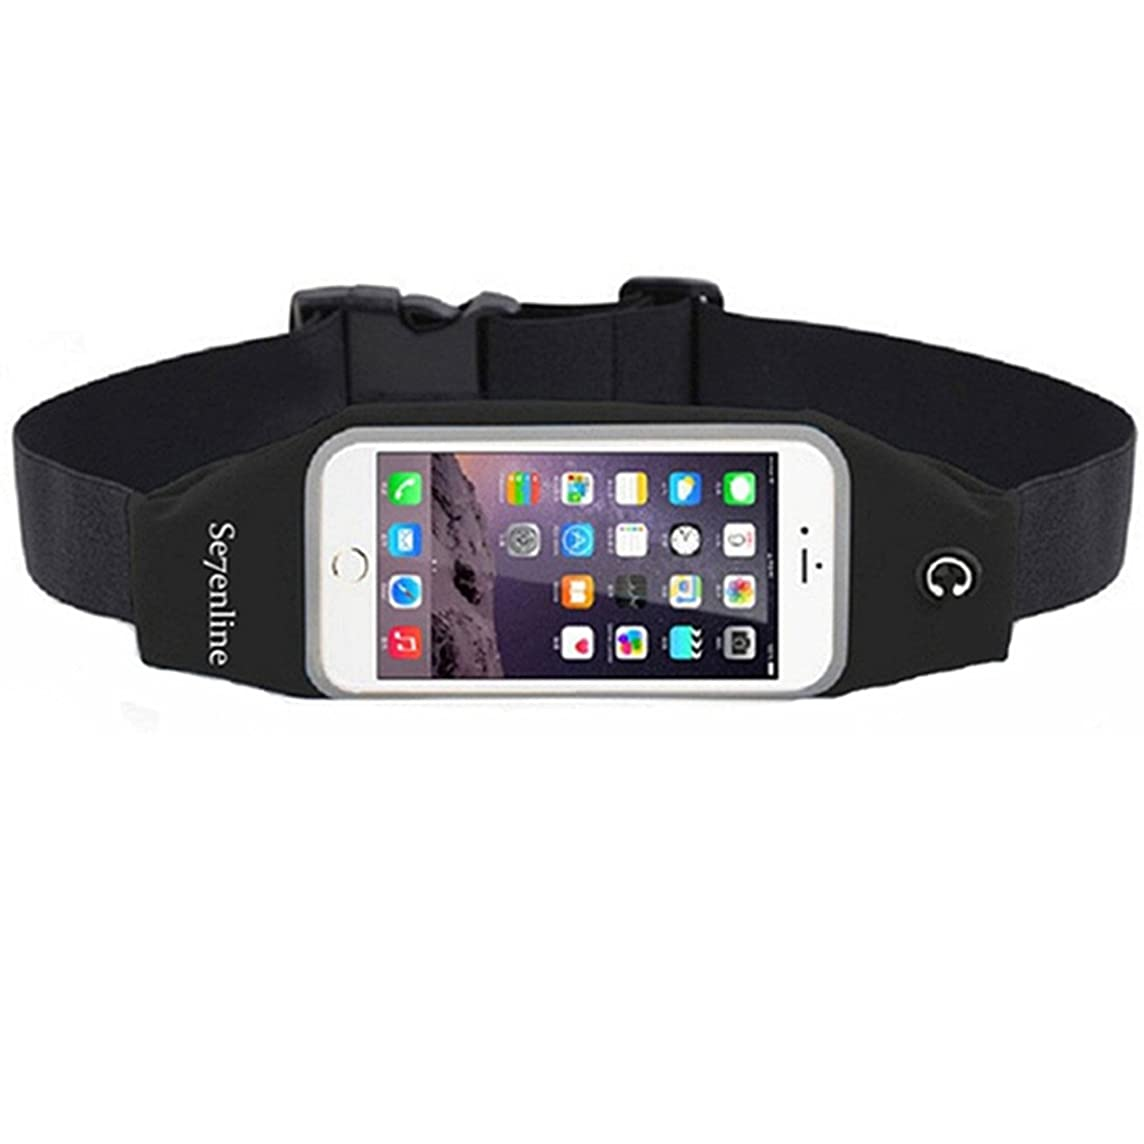 Se7enline Running Belt, Lightweight Sweatproof Large Capacity Waist Pack Bag with Clear Touch Screen Windows for iPhone 7/8 Plus 6/6S Plus 5/5S Samsung Galaxy S5 S4 4.7 5.5 inches